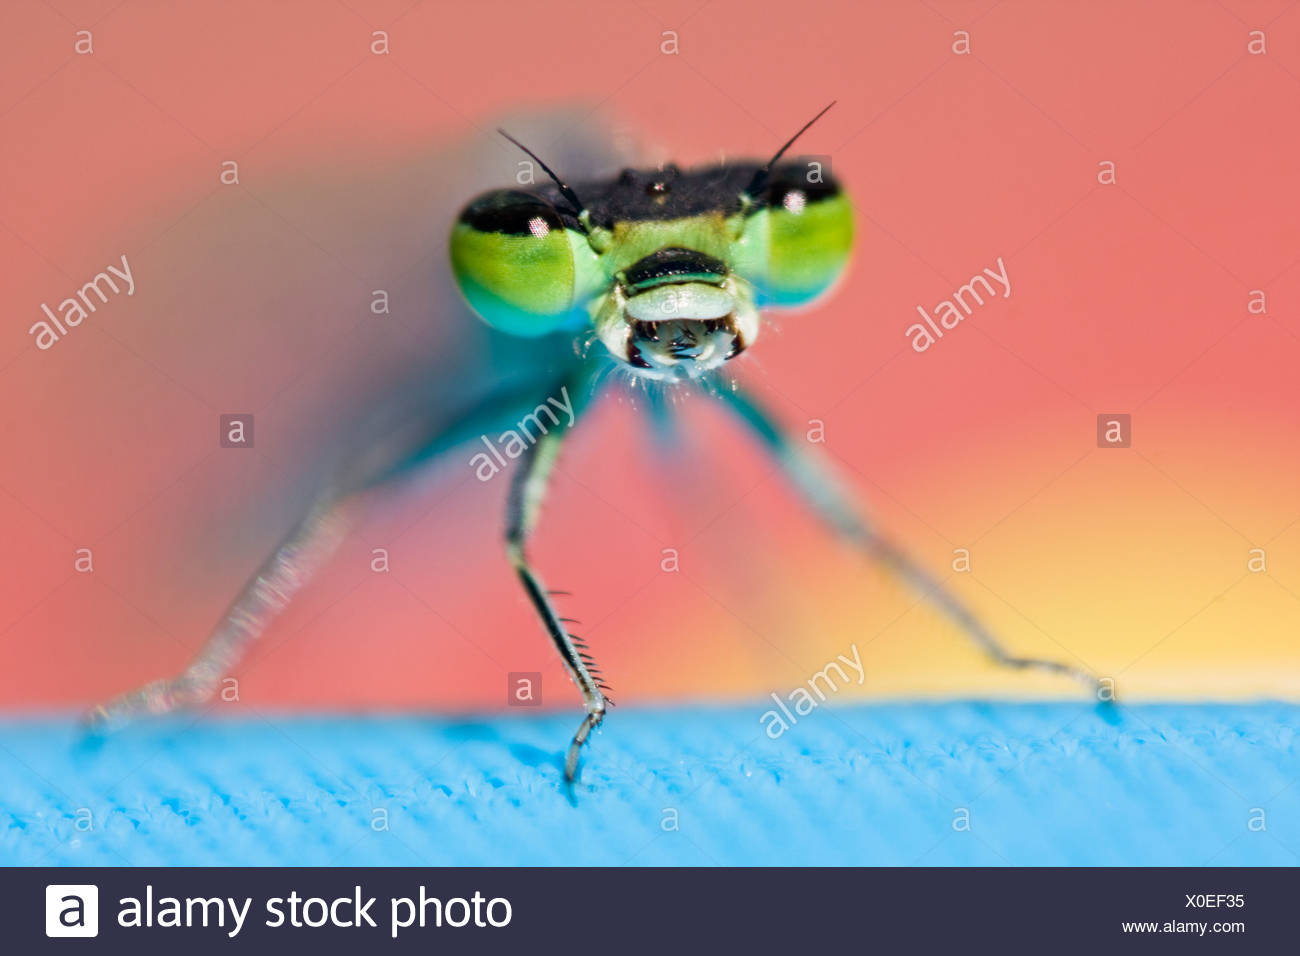 Close-up of dragonfly with mouth open - Stock Image